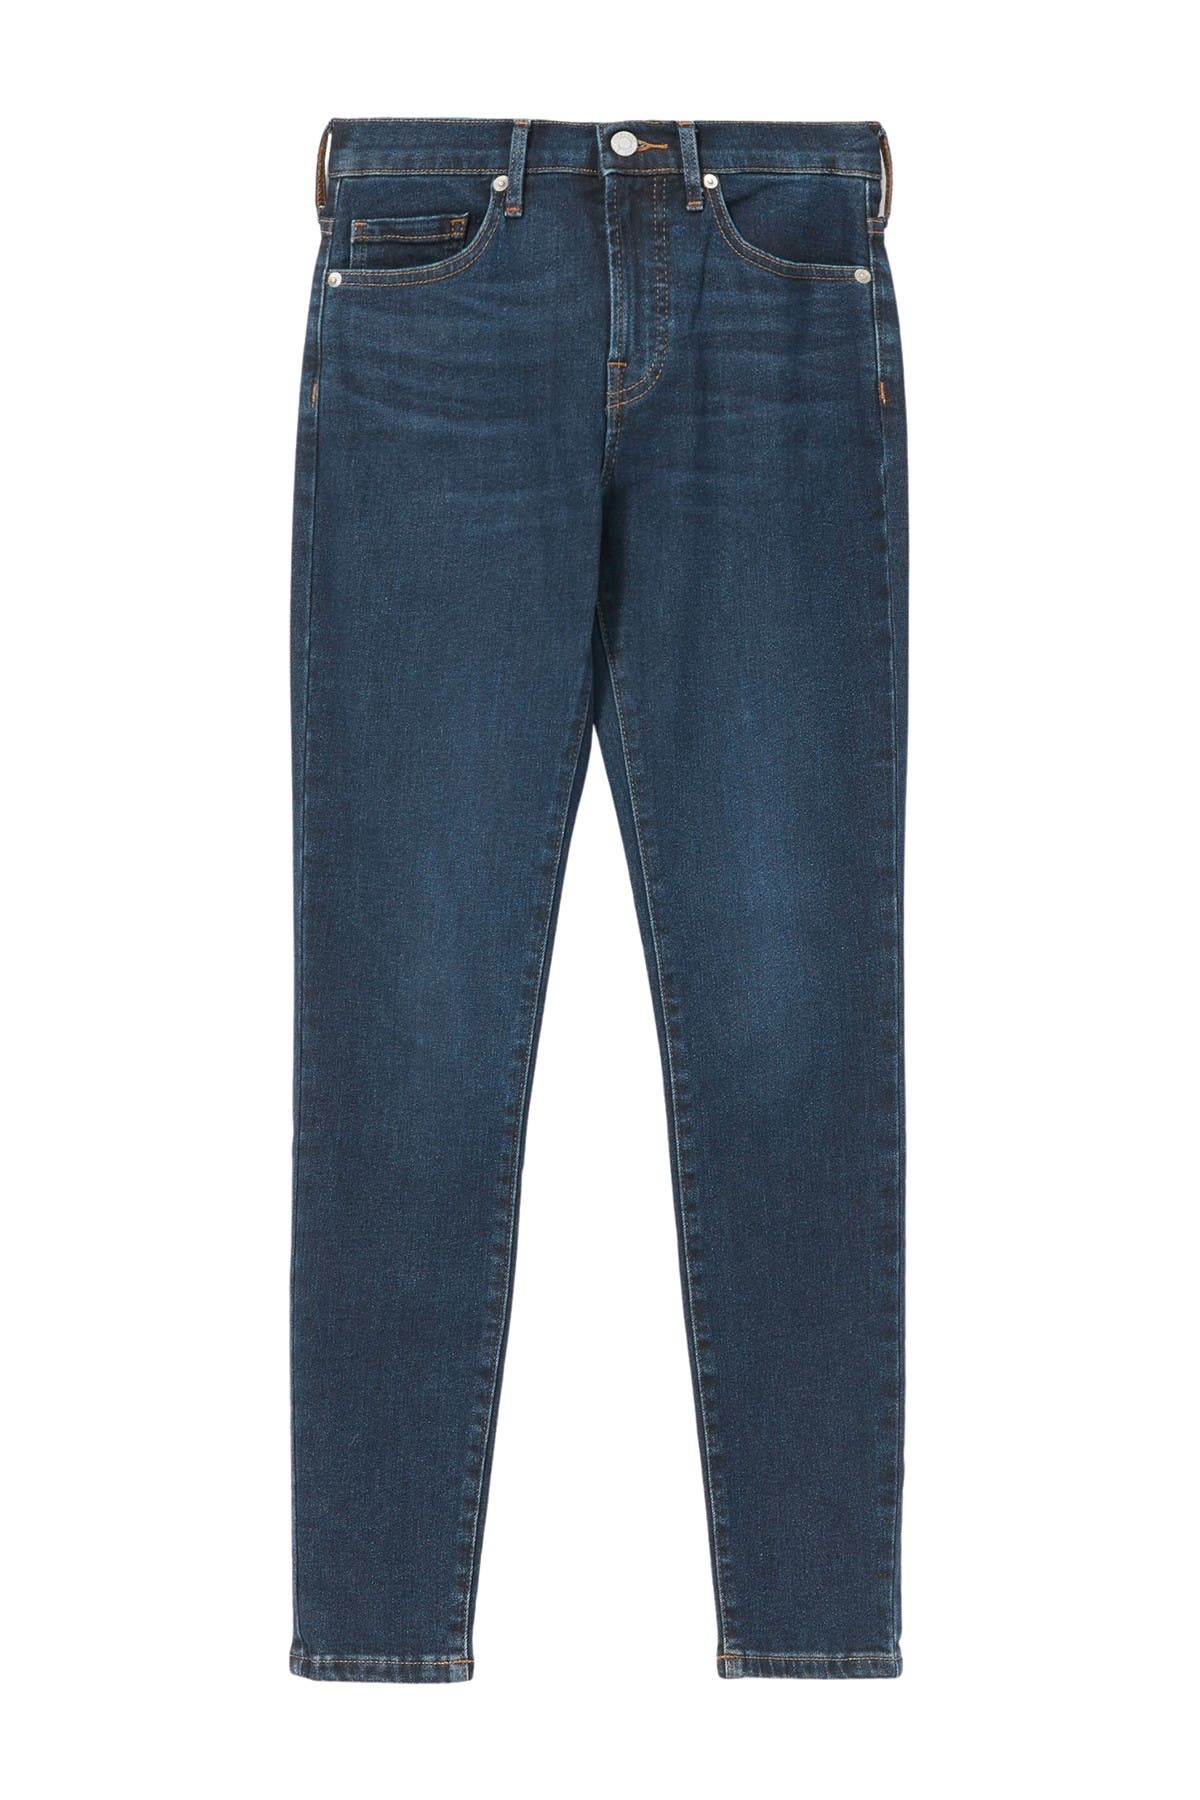 Image of EVERLANE The Authentic Stretch Mid-Rise Skinny